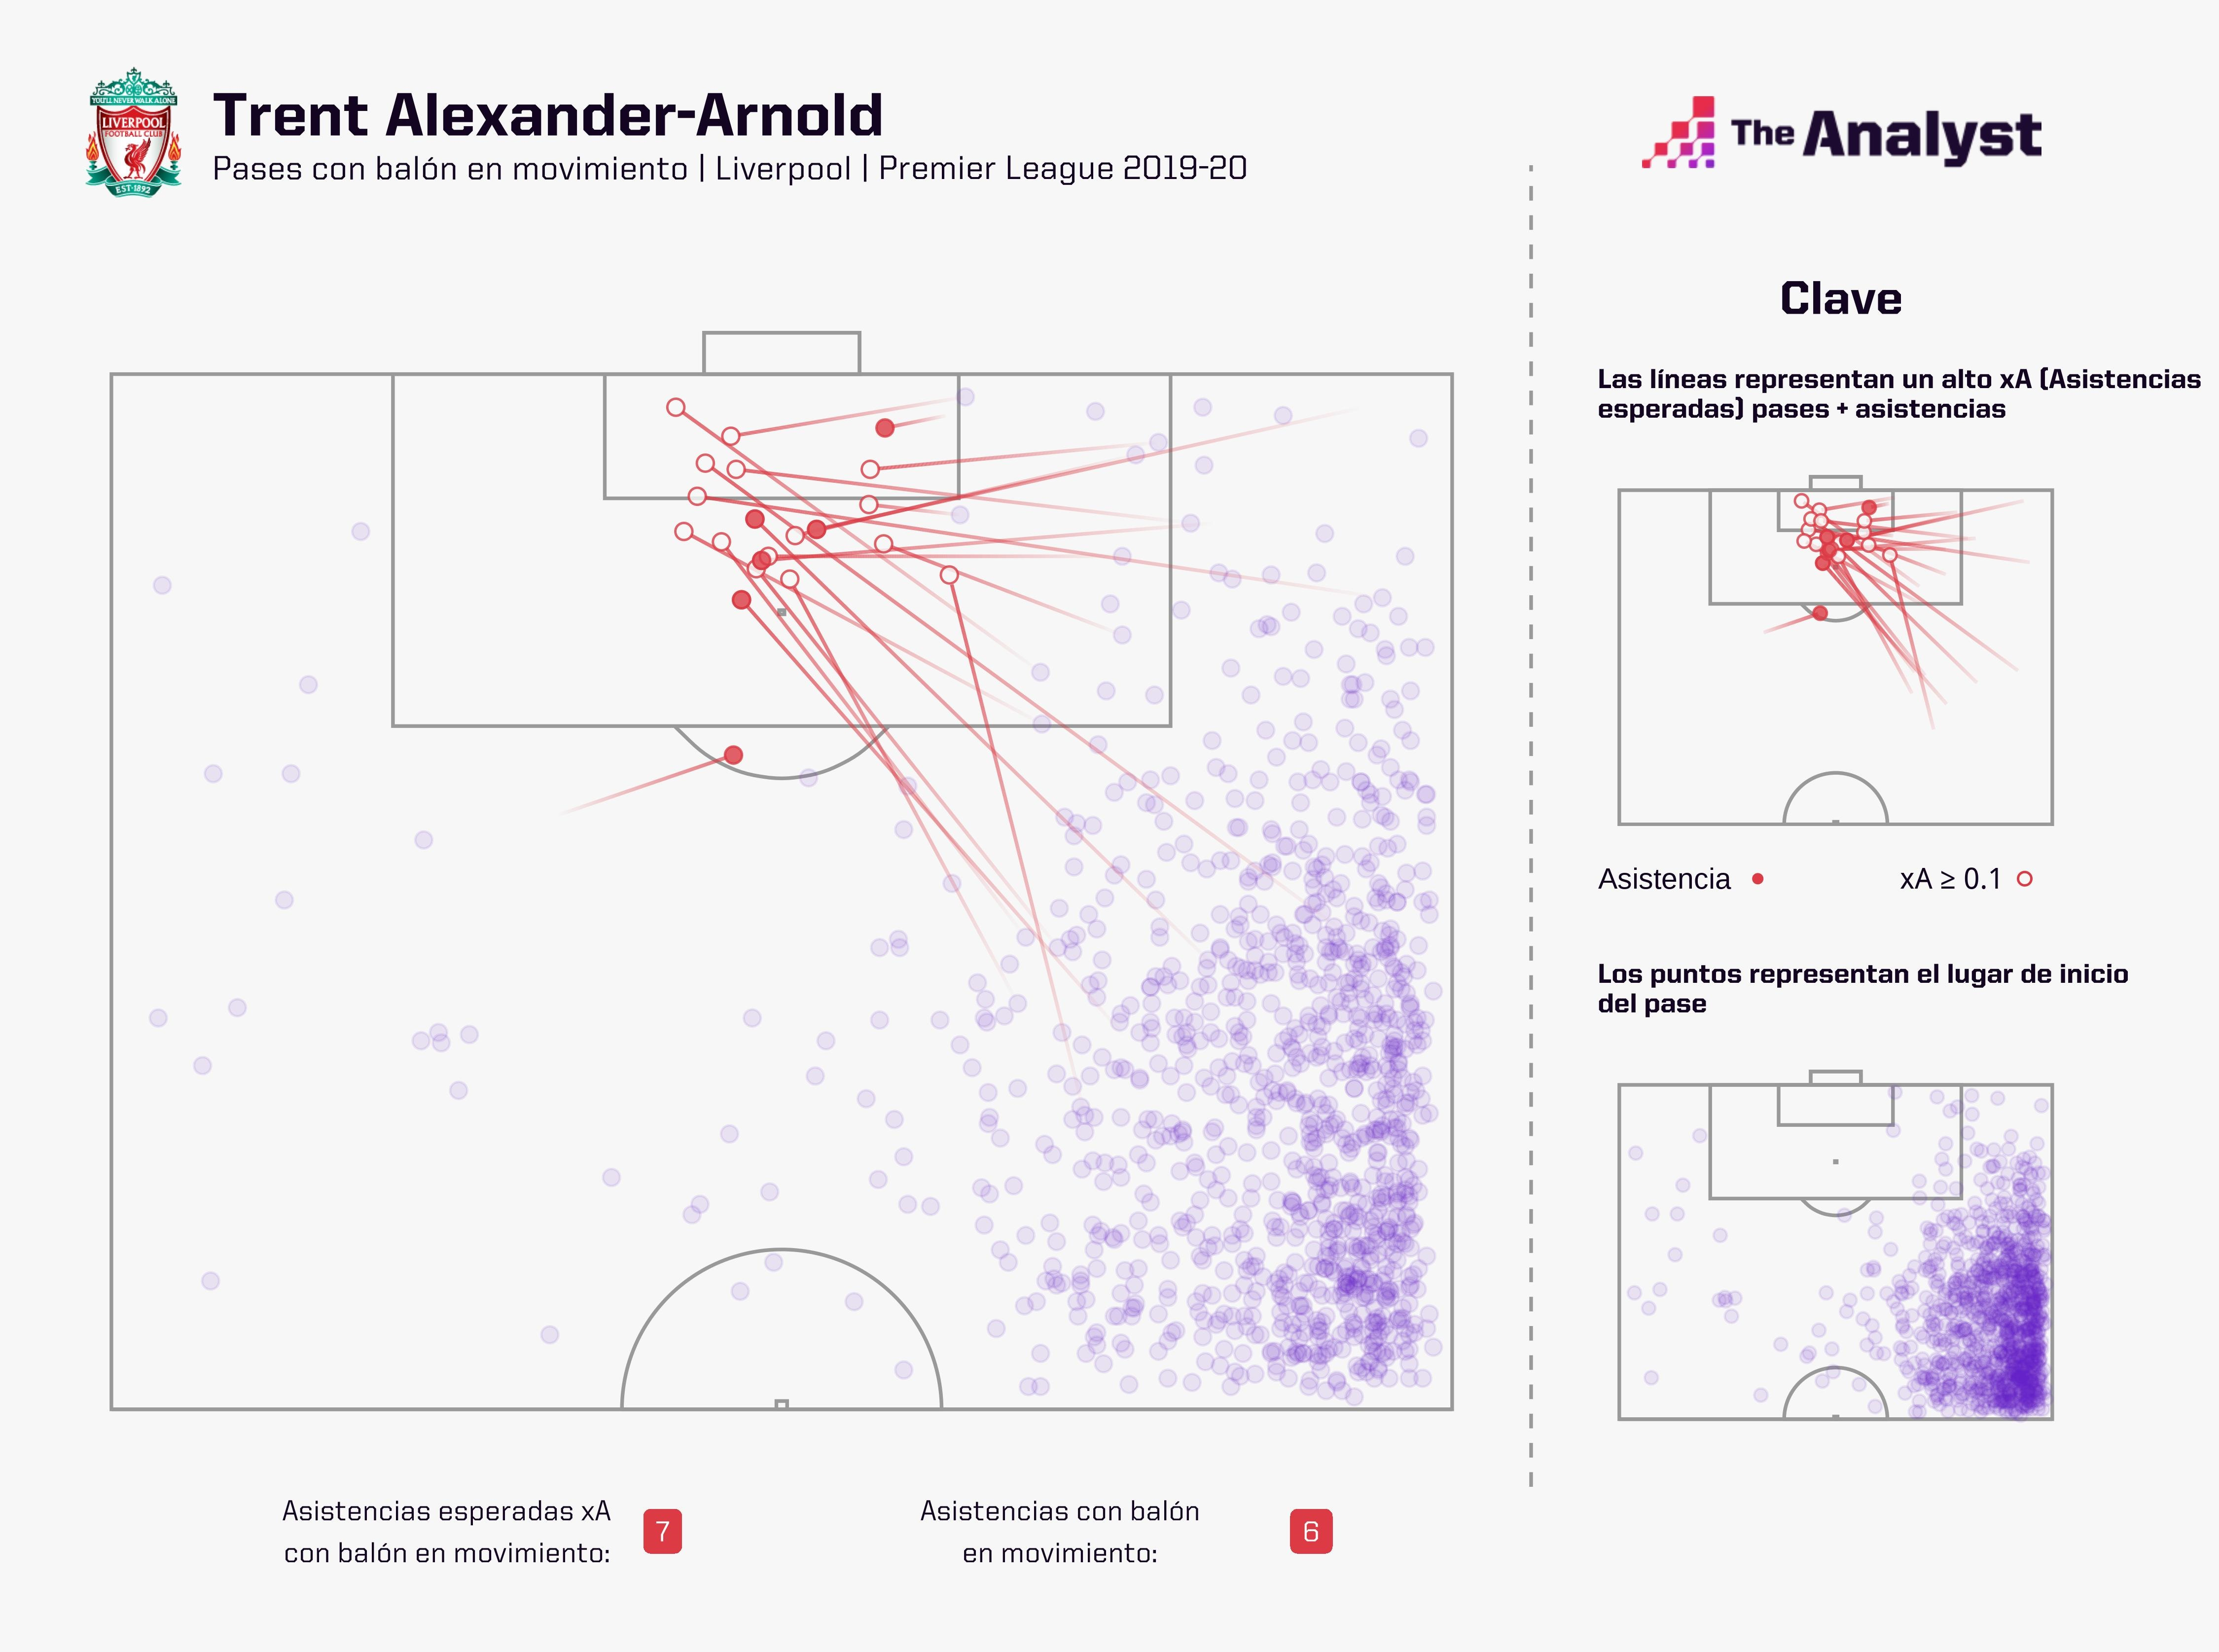 Trent Alexander Arnold Expected Assists 2019-20 Spanish